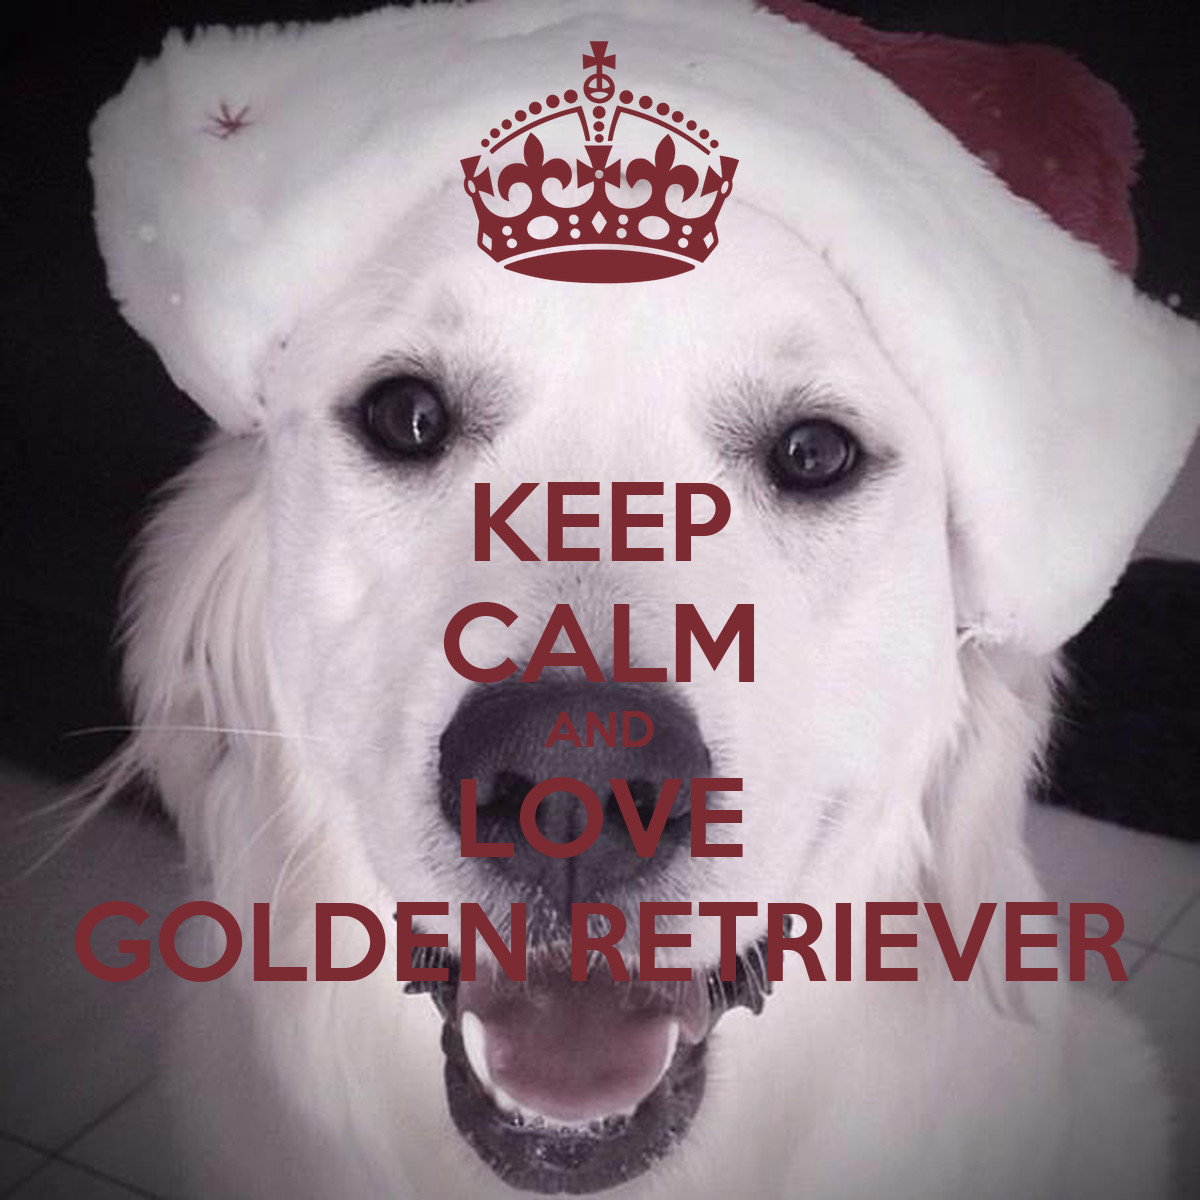 KEEP CALM AND LOVE GOLDEN RETRIEVER Poster | frimoussedog ...